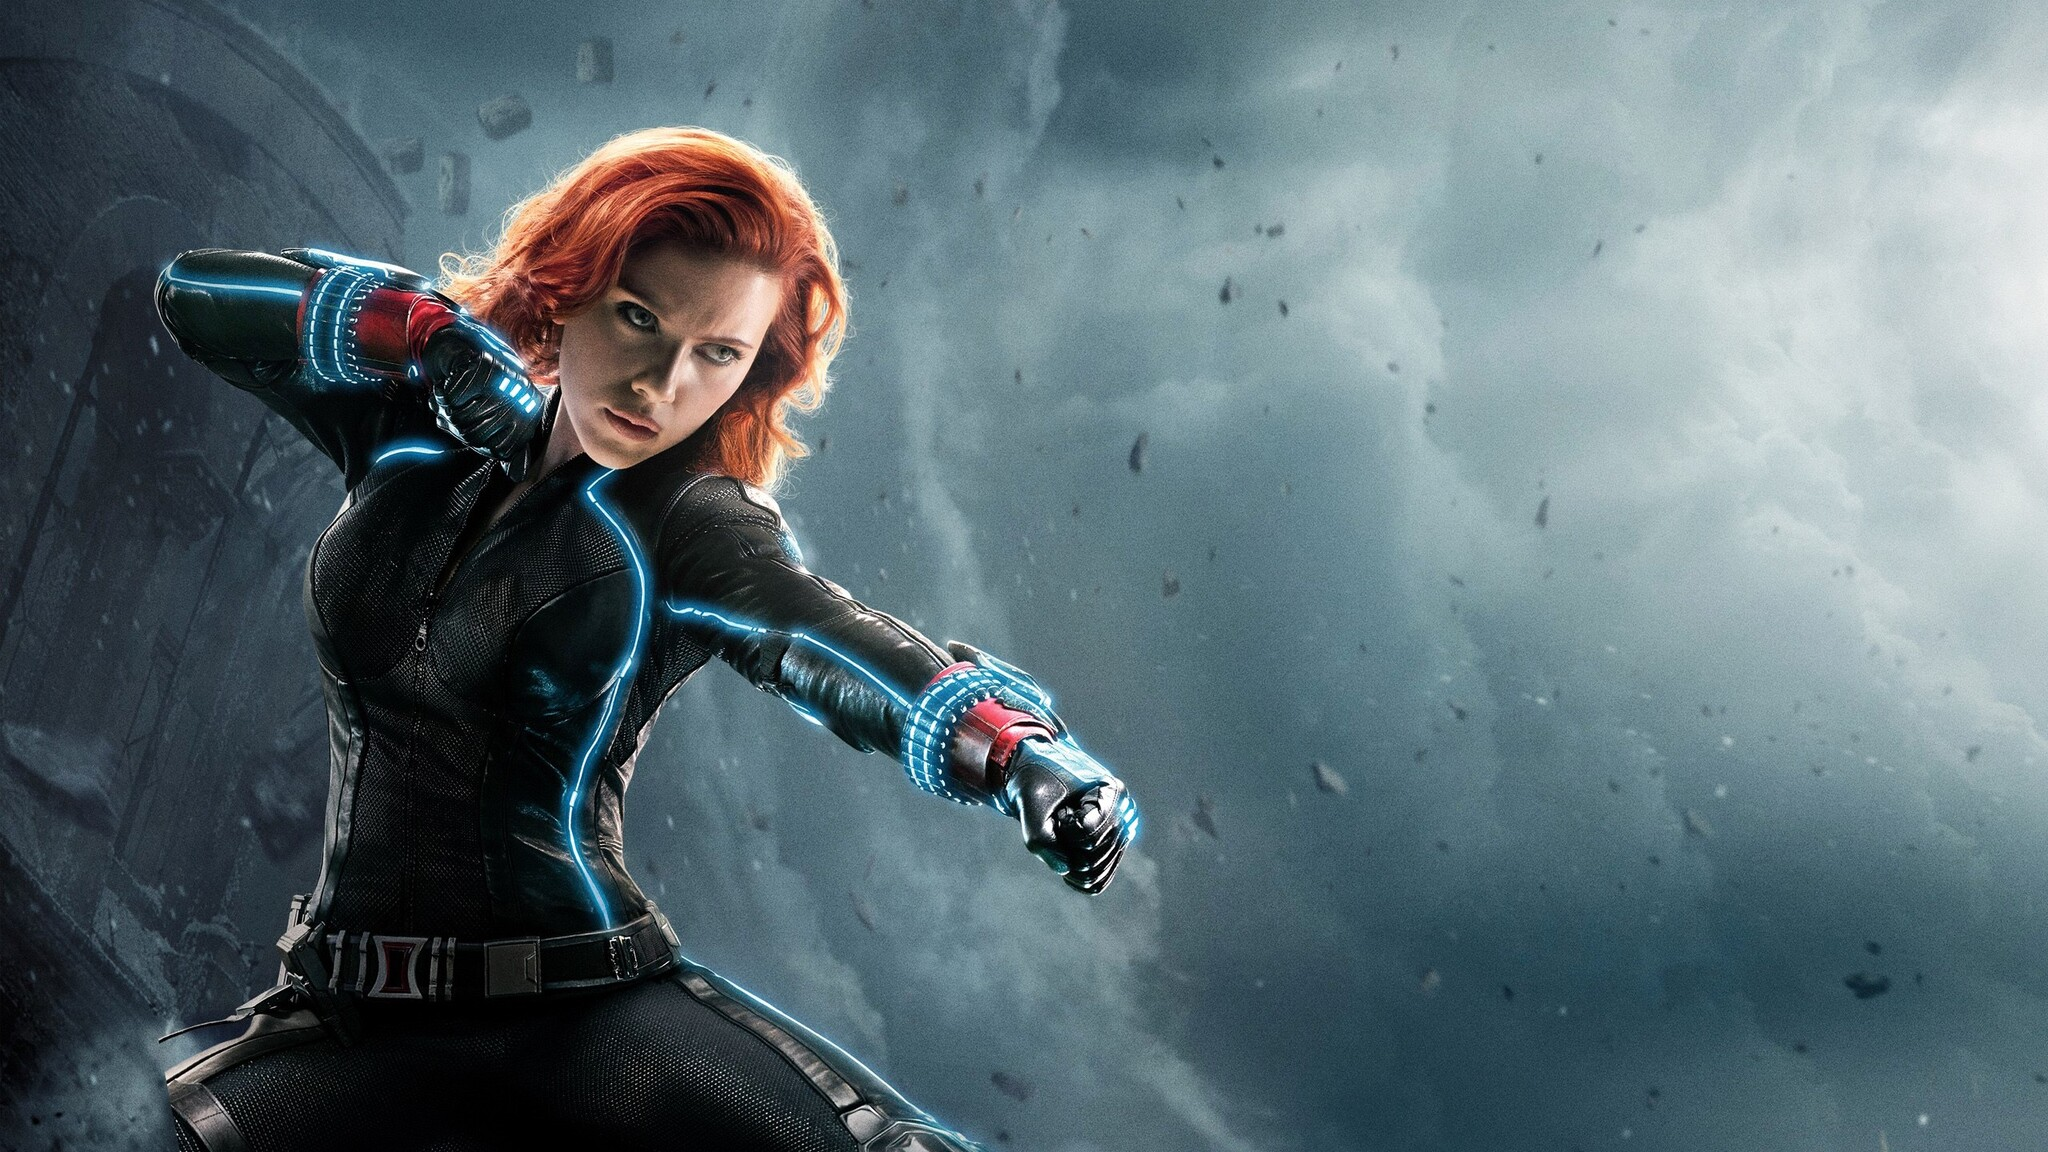 avengers-age-of-ultron-black-widow.jpg